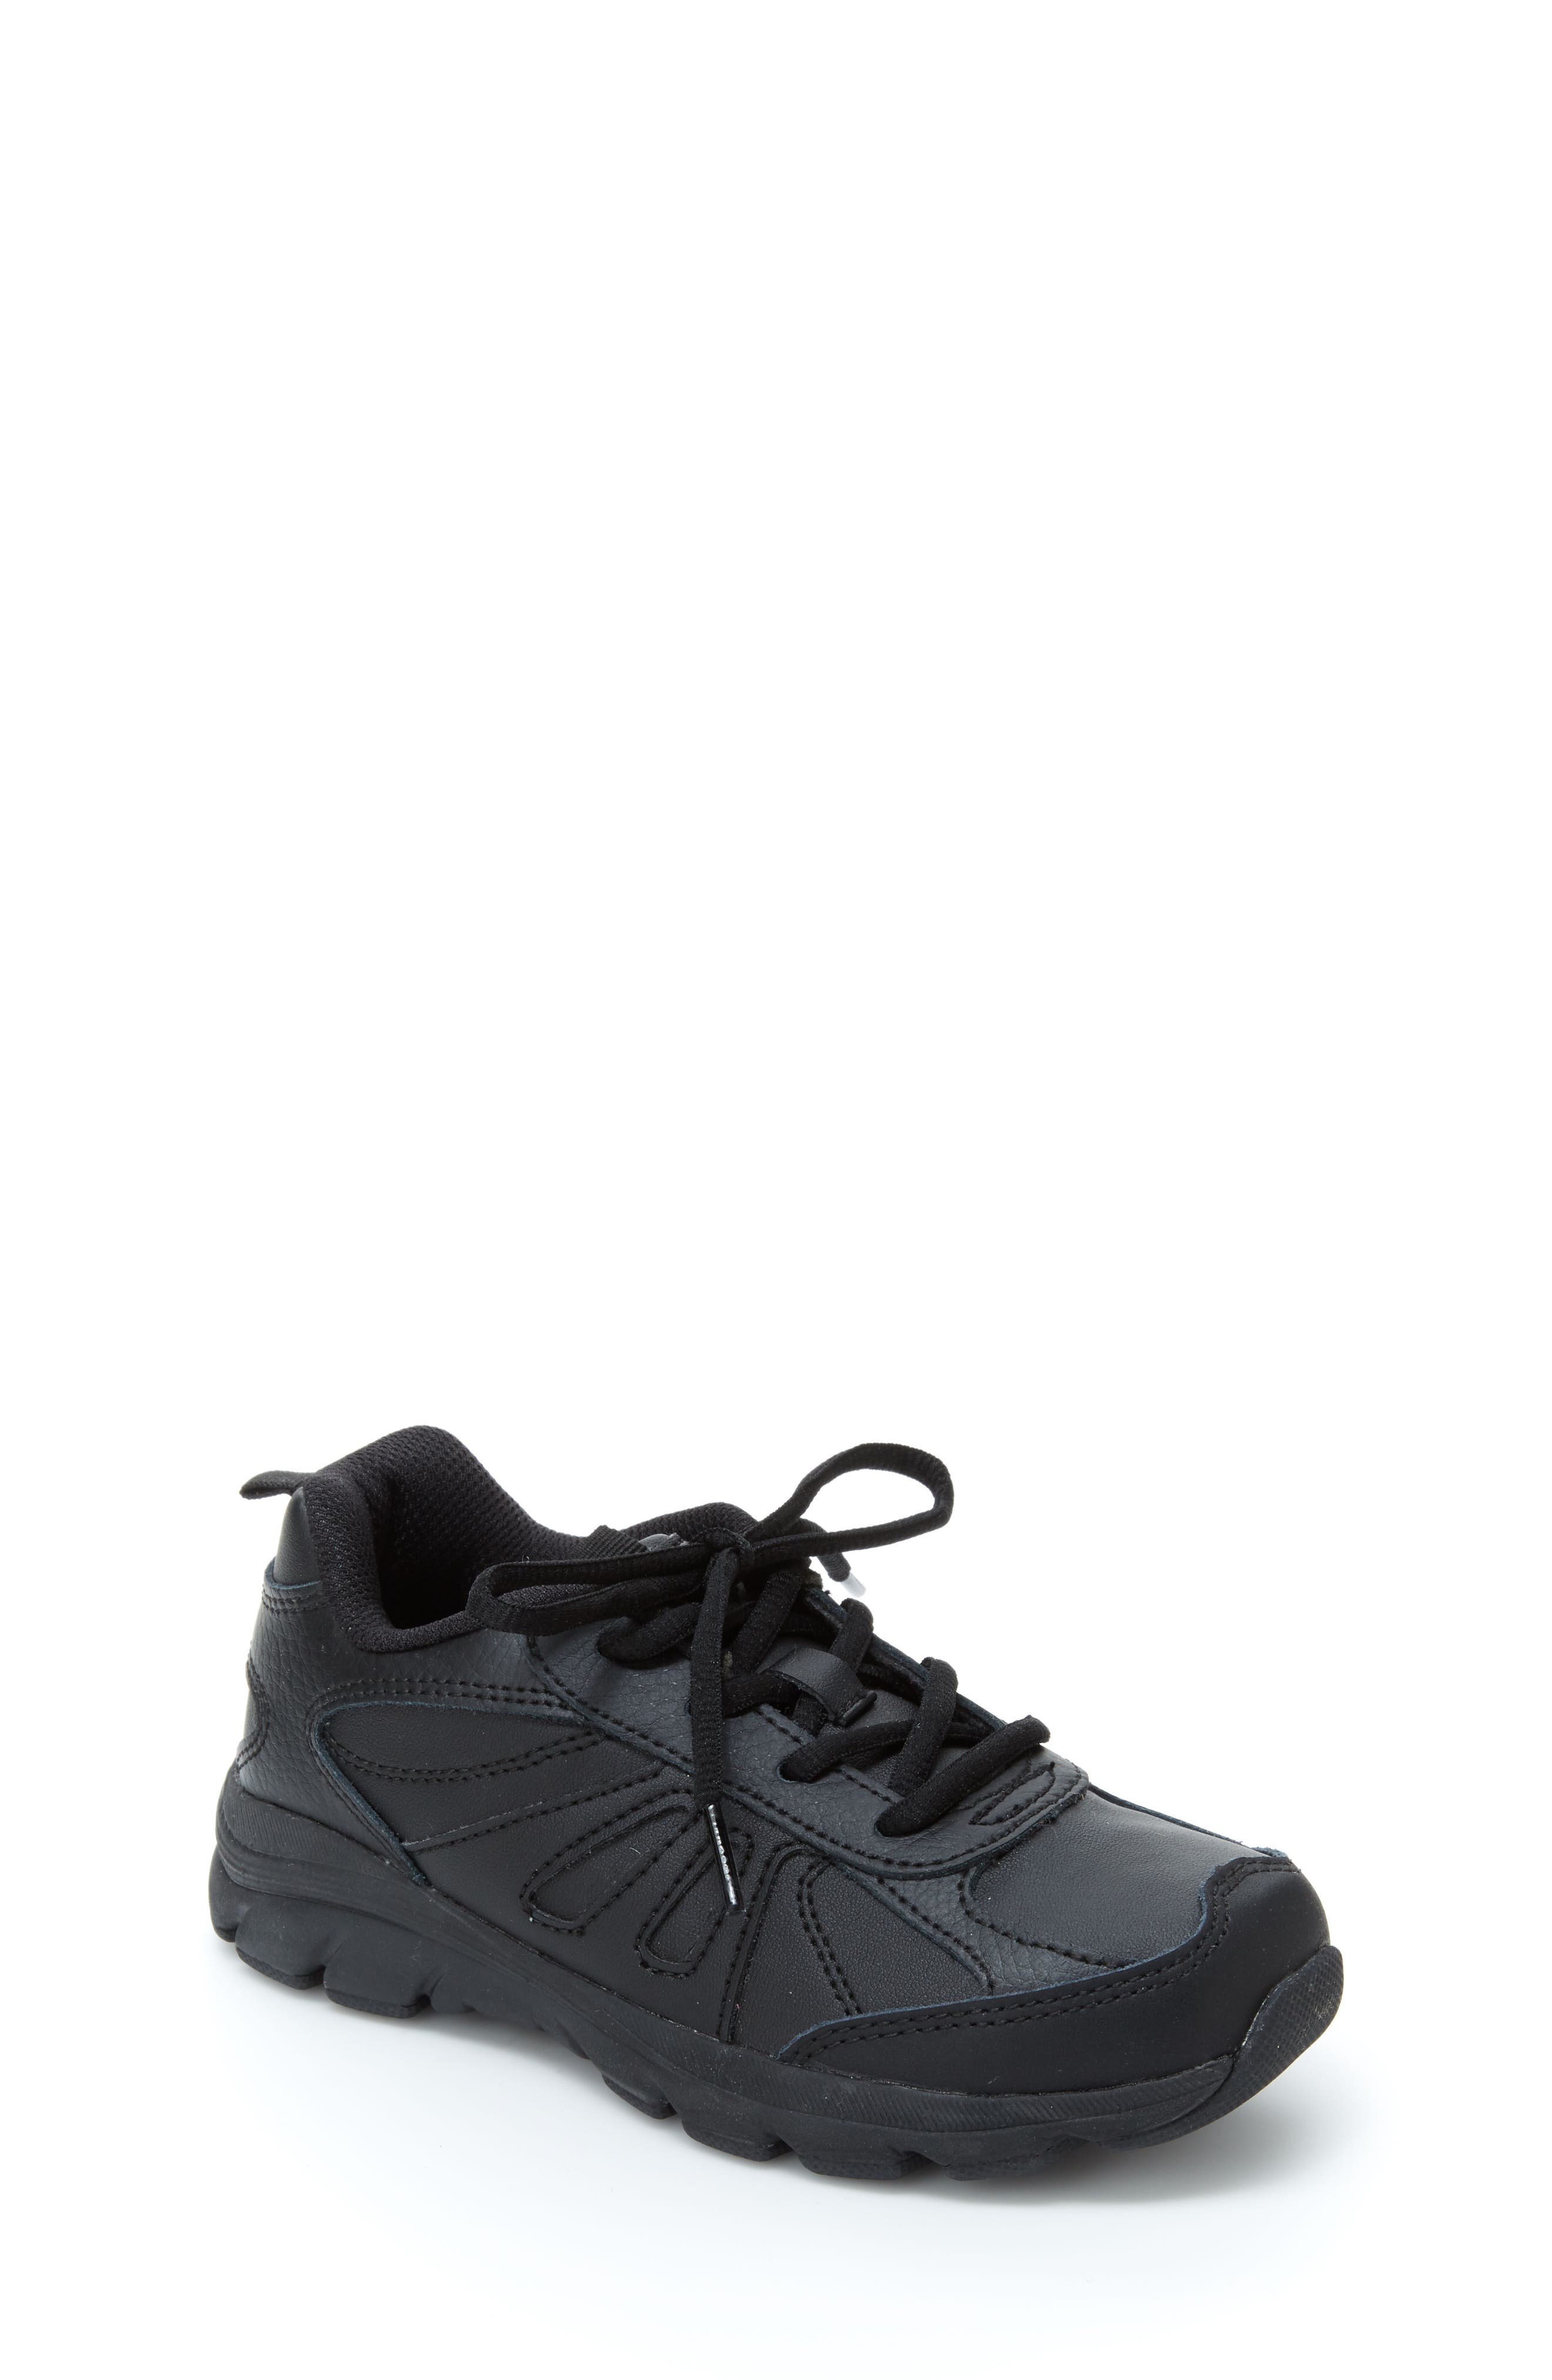 Cooper 2.0 Sneaker,                             Main thumbnail 1, color,                             BLACK